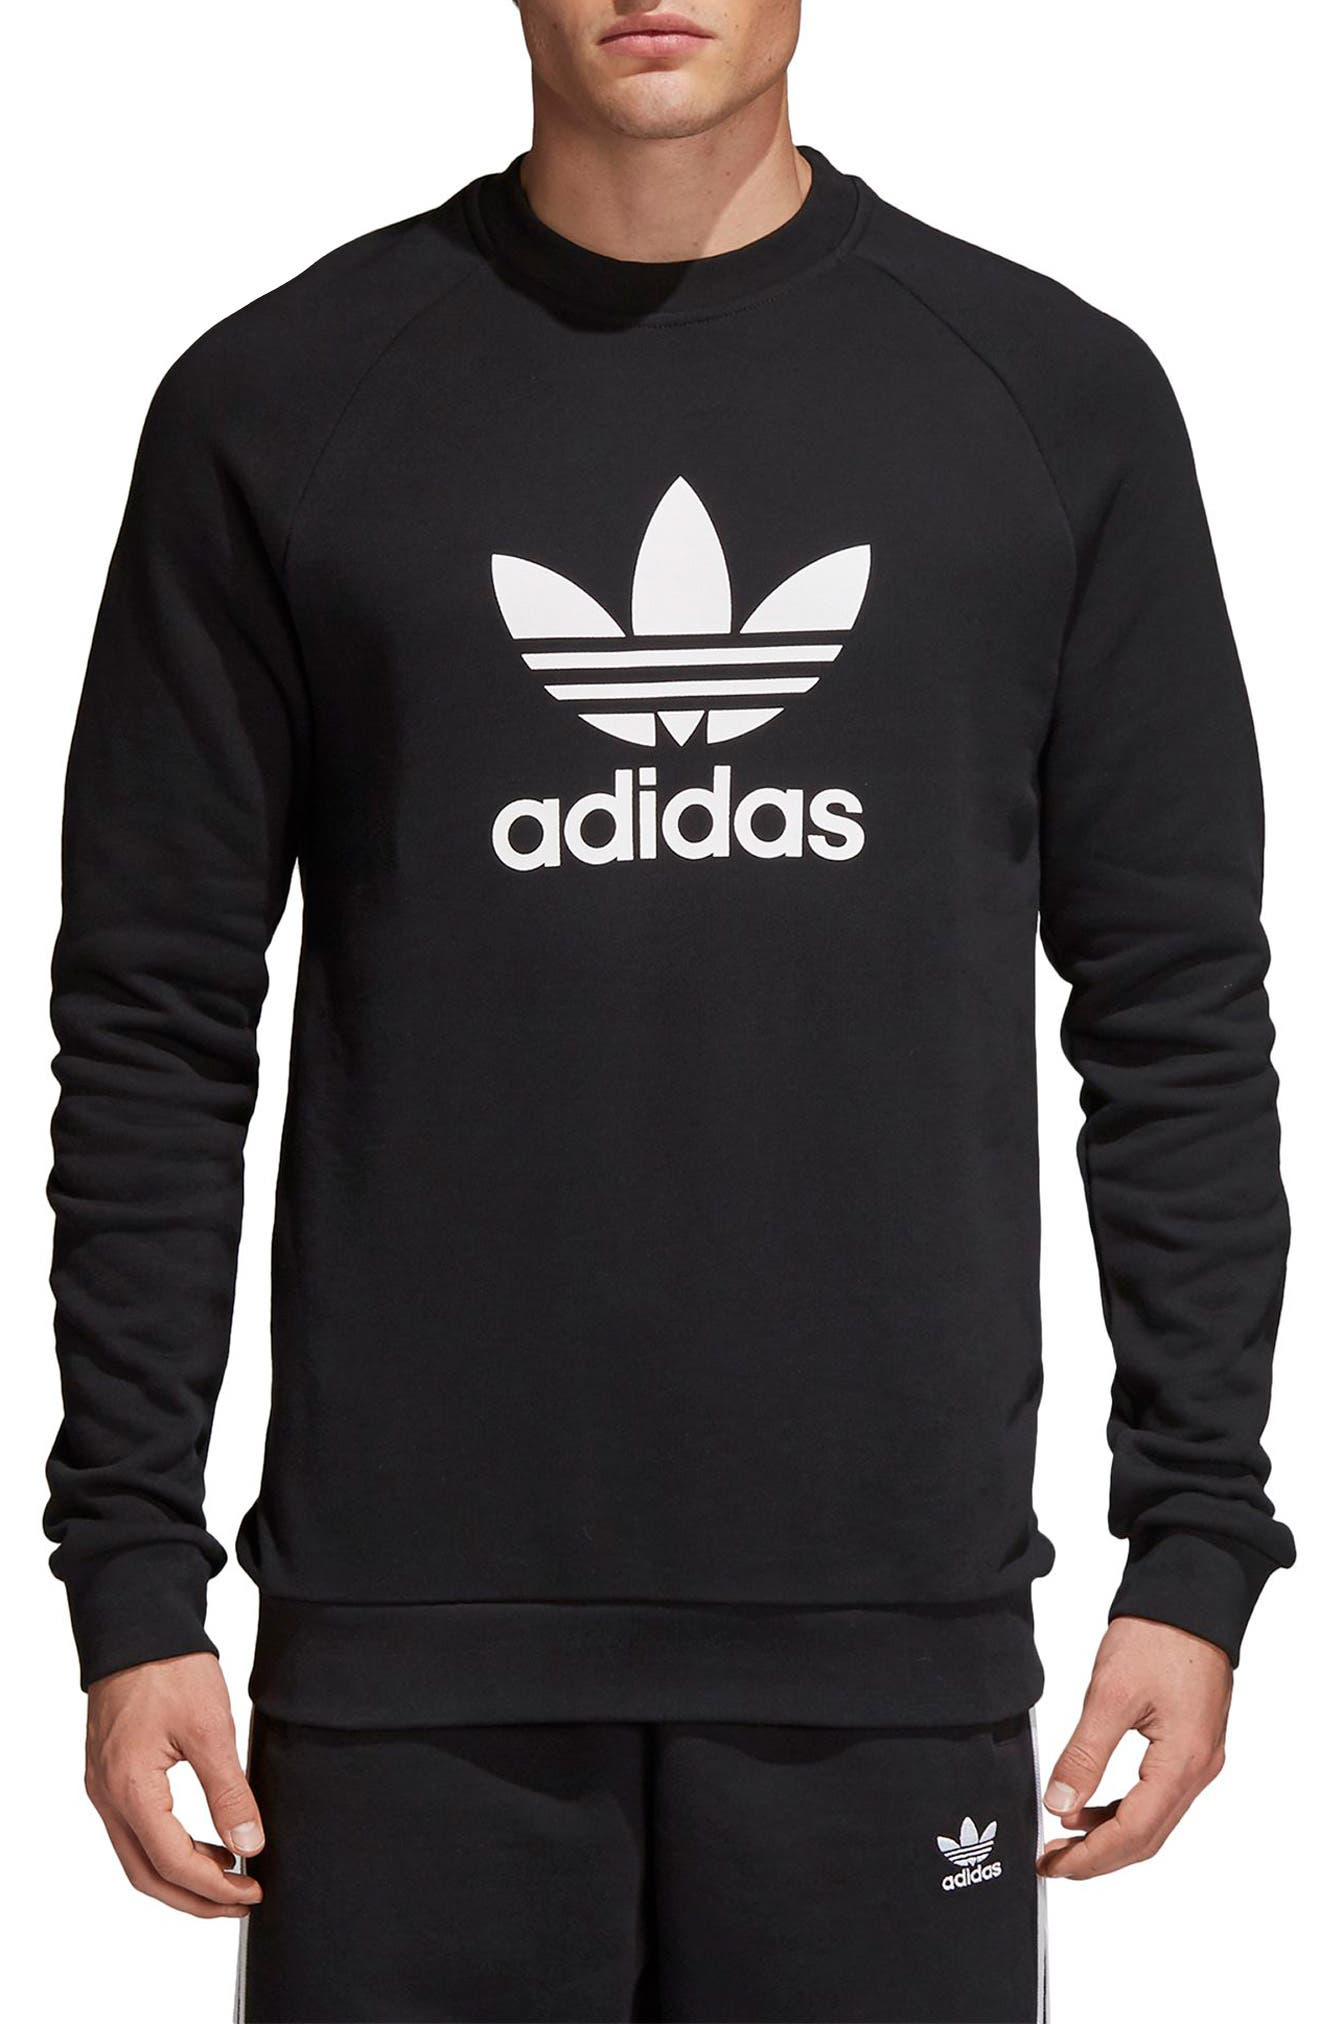 ADIDAS ORIGINALS, Trefoil Sweatshirt, Main thumbnail 1, color, BLACK